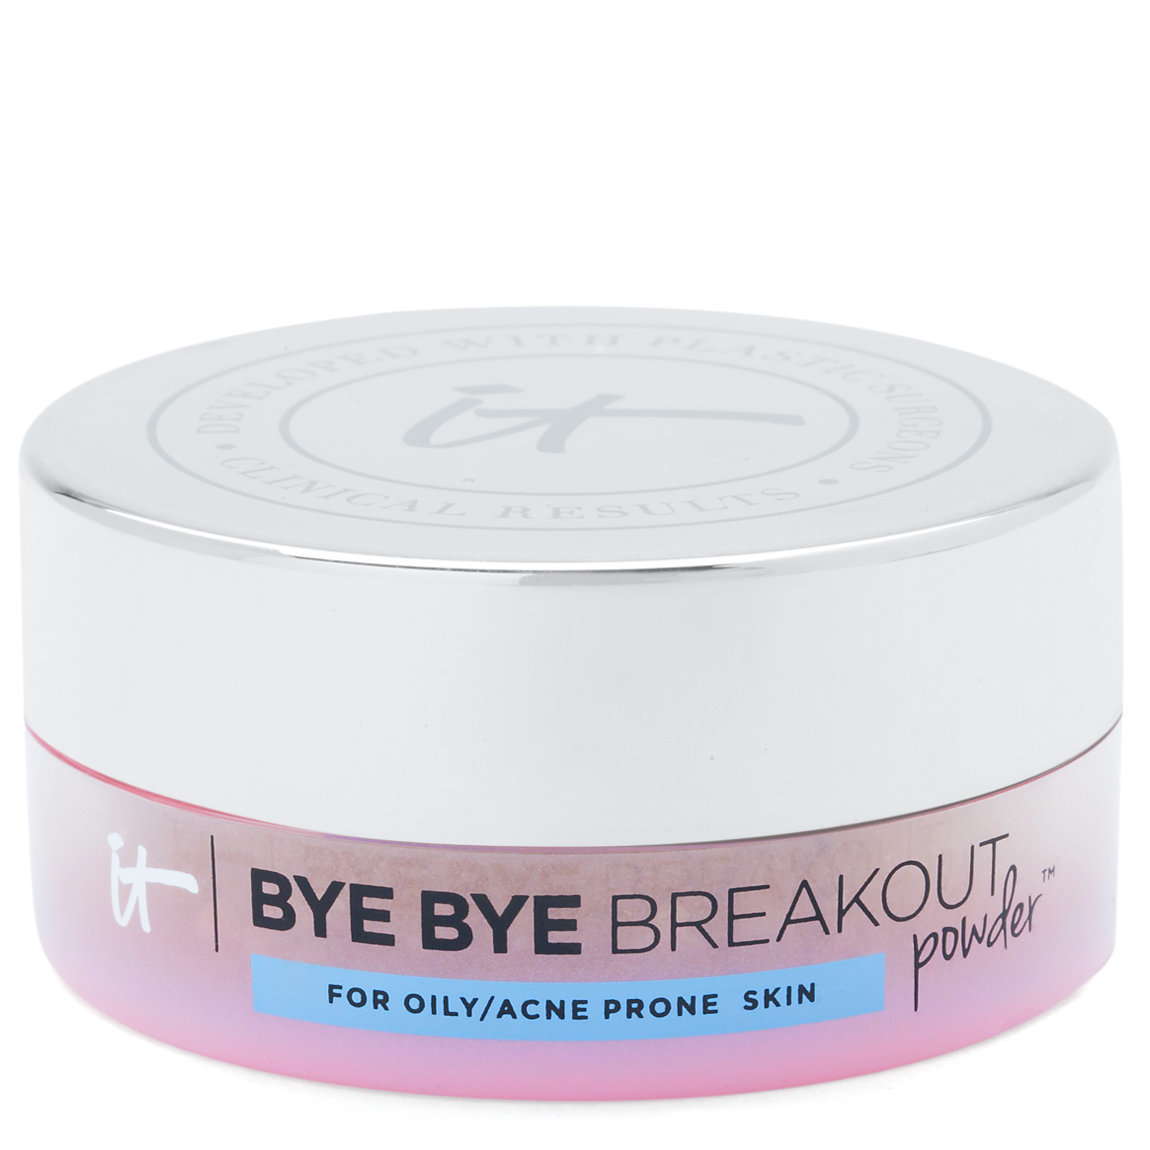 IT Cosmetics  Bye Bye Breakout Powder Translucent alternative view 1.